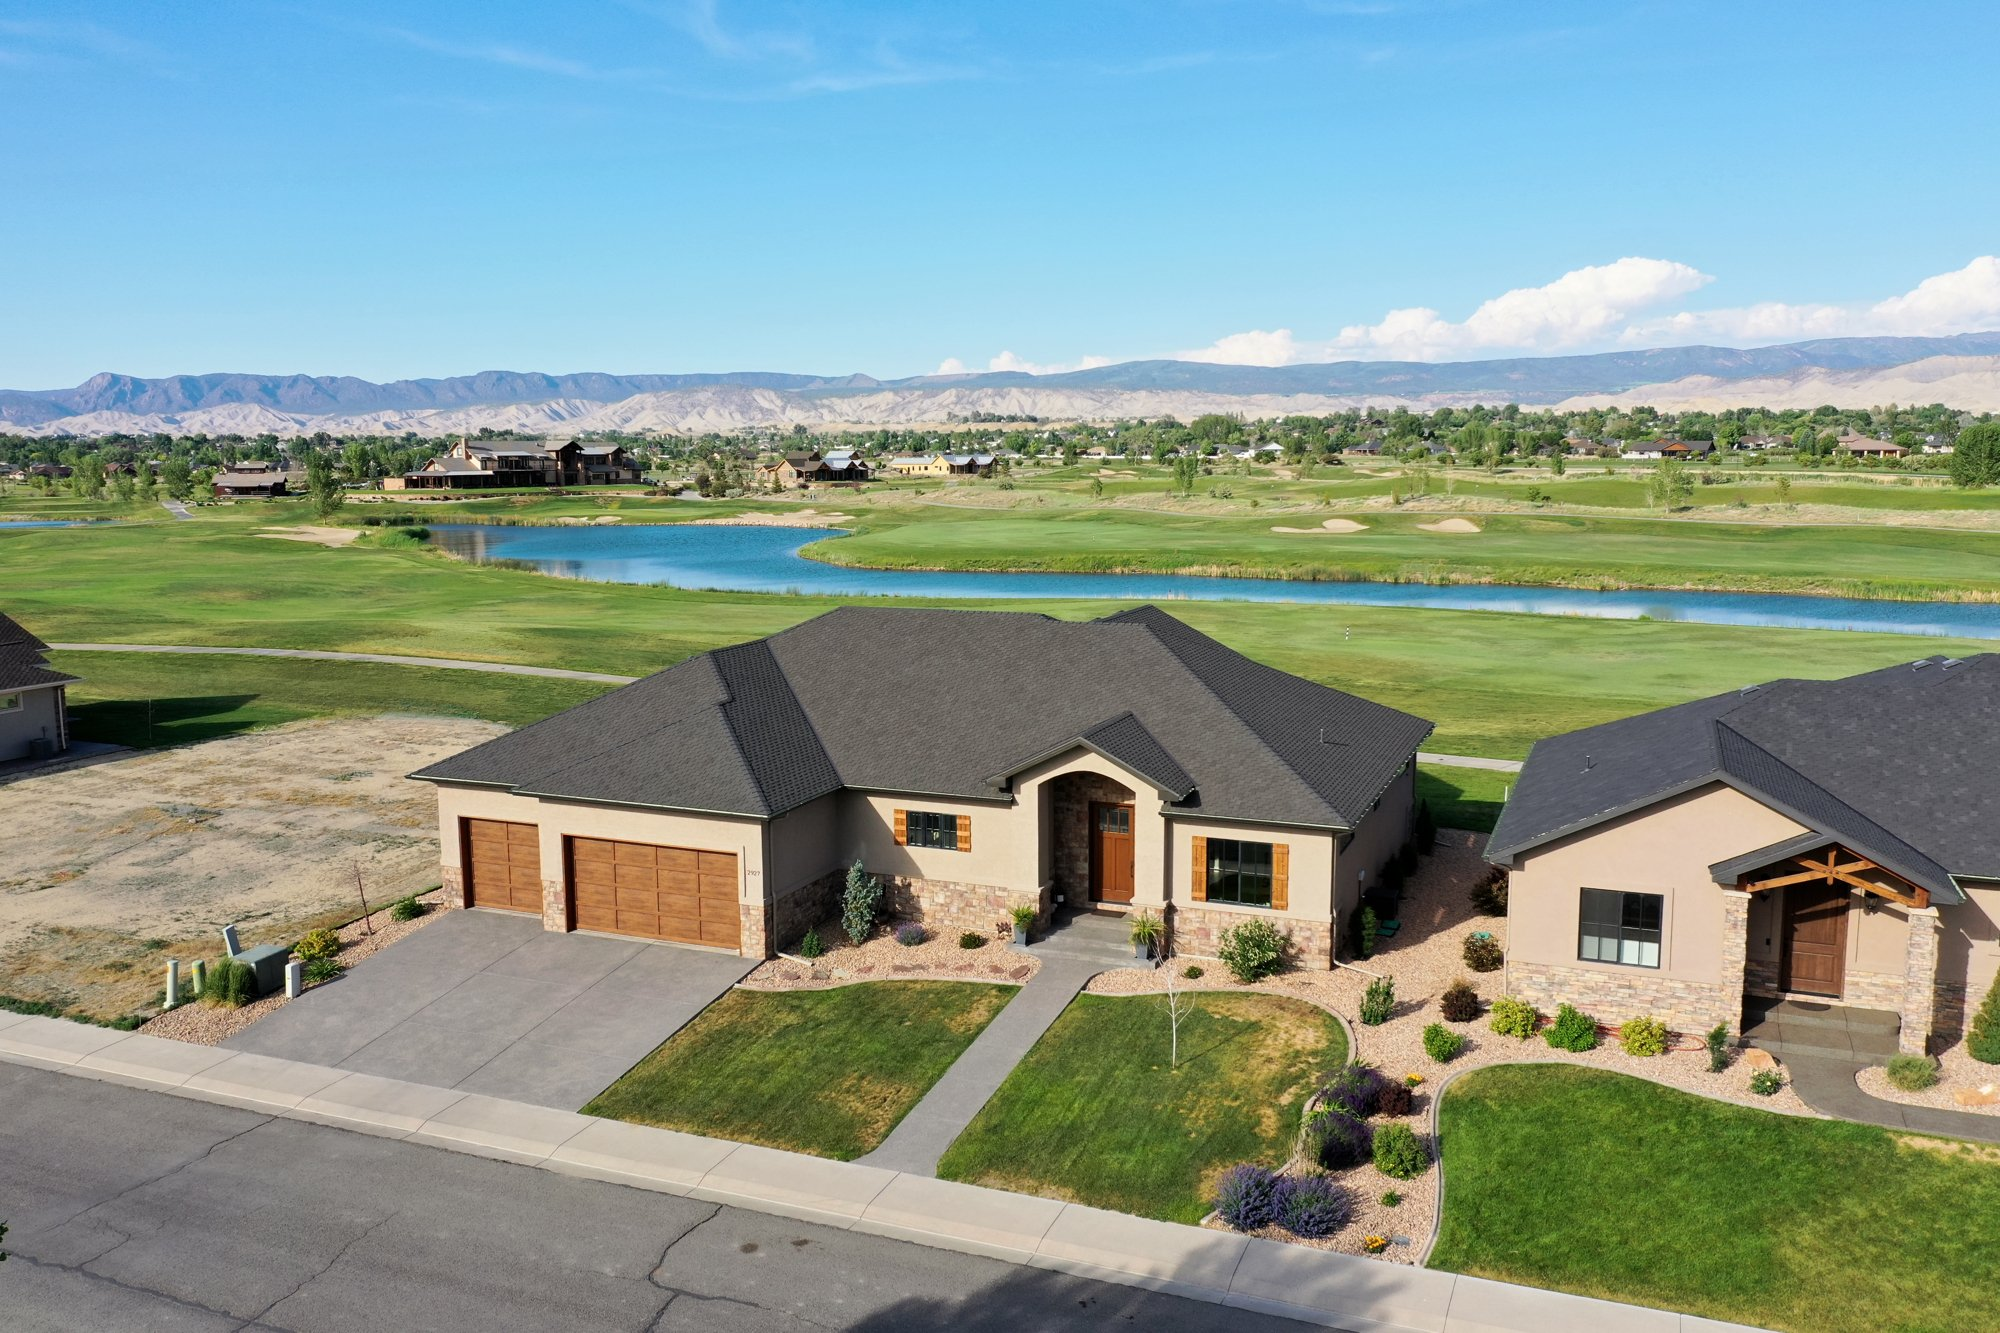 Aerial View Home and Golf Course - 2927 Sleeping Bear Rd Montrose, CO 81401 - Atha Team Real Estate